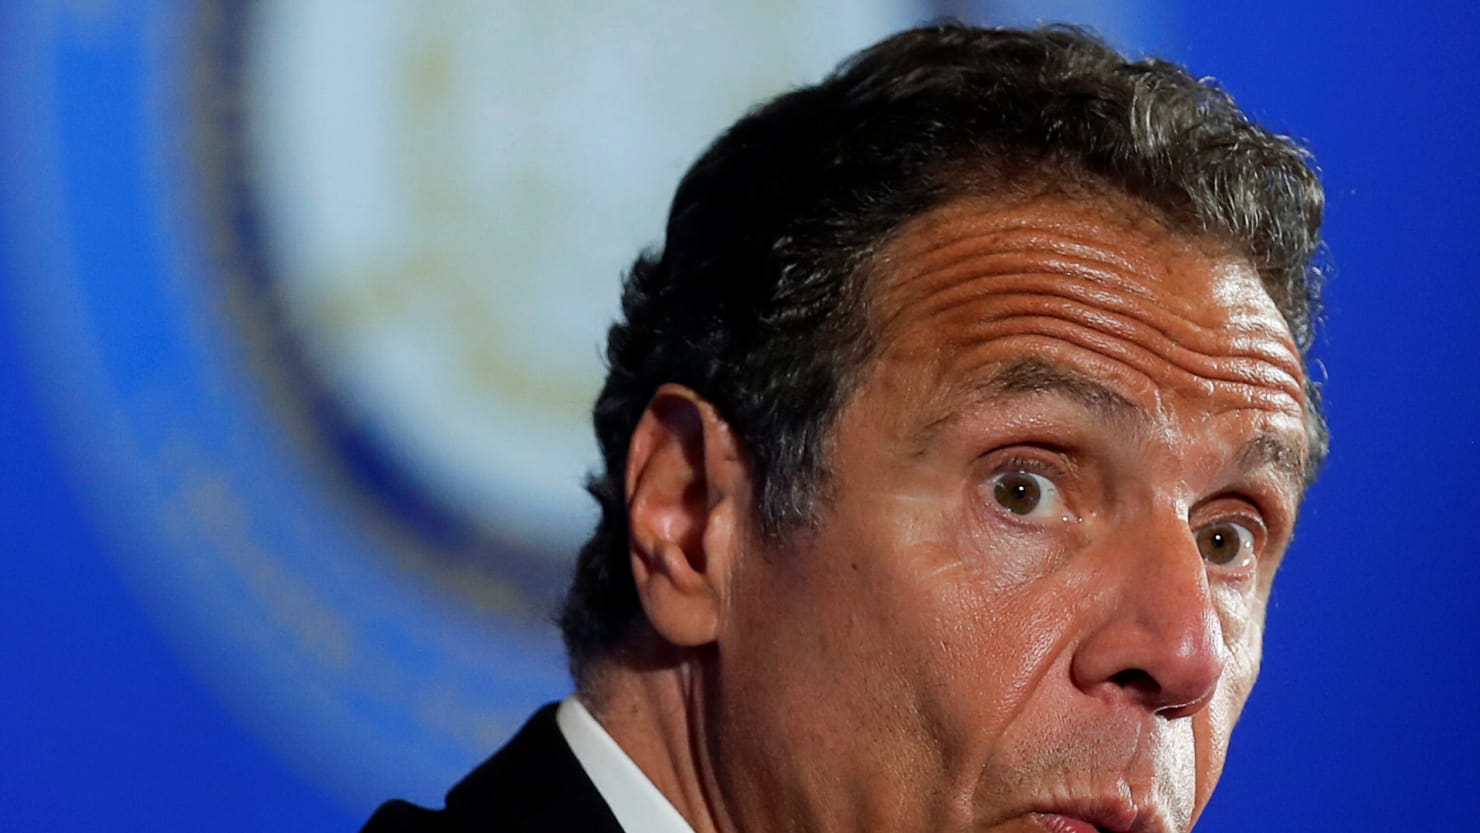 New York's First Dad Andrew Cuomo Was Dishing About His Daughters While Creeping on His Staffers